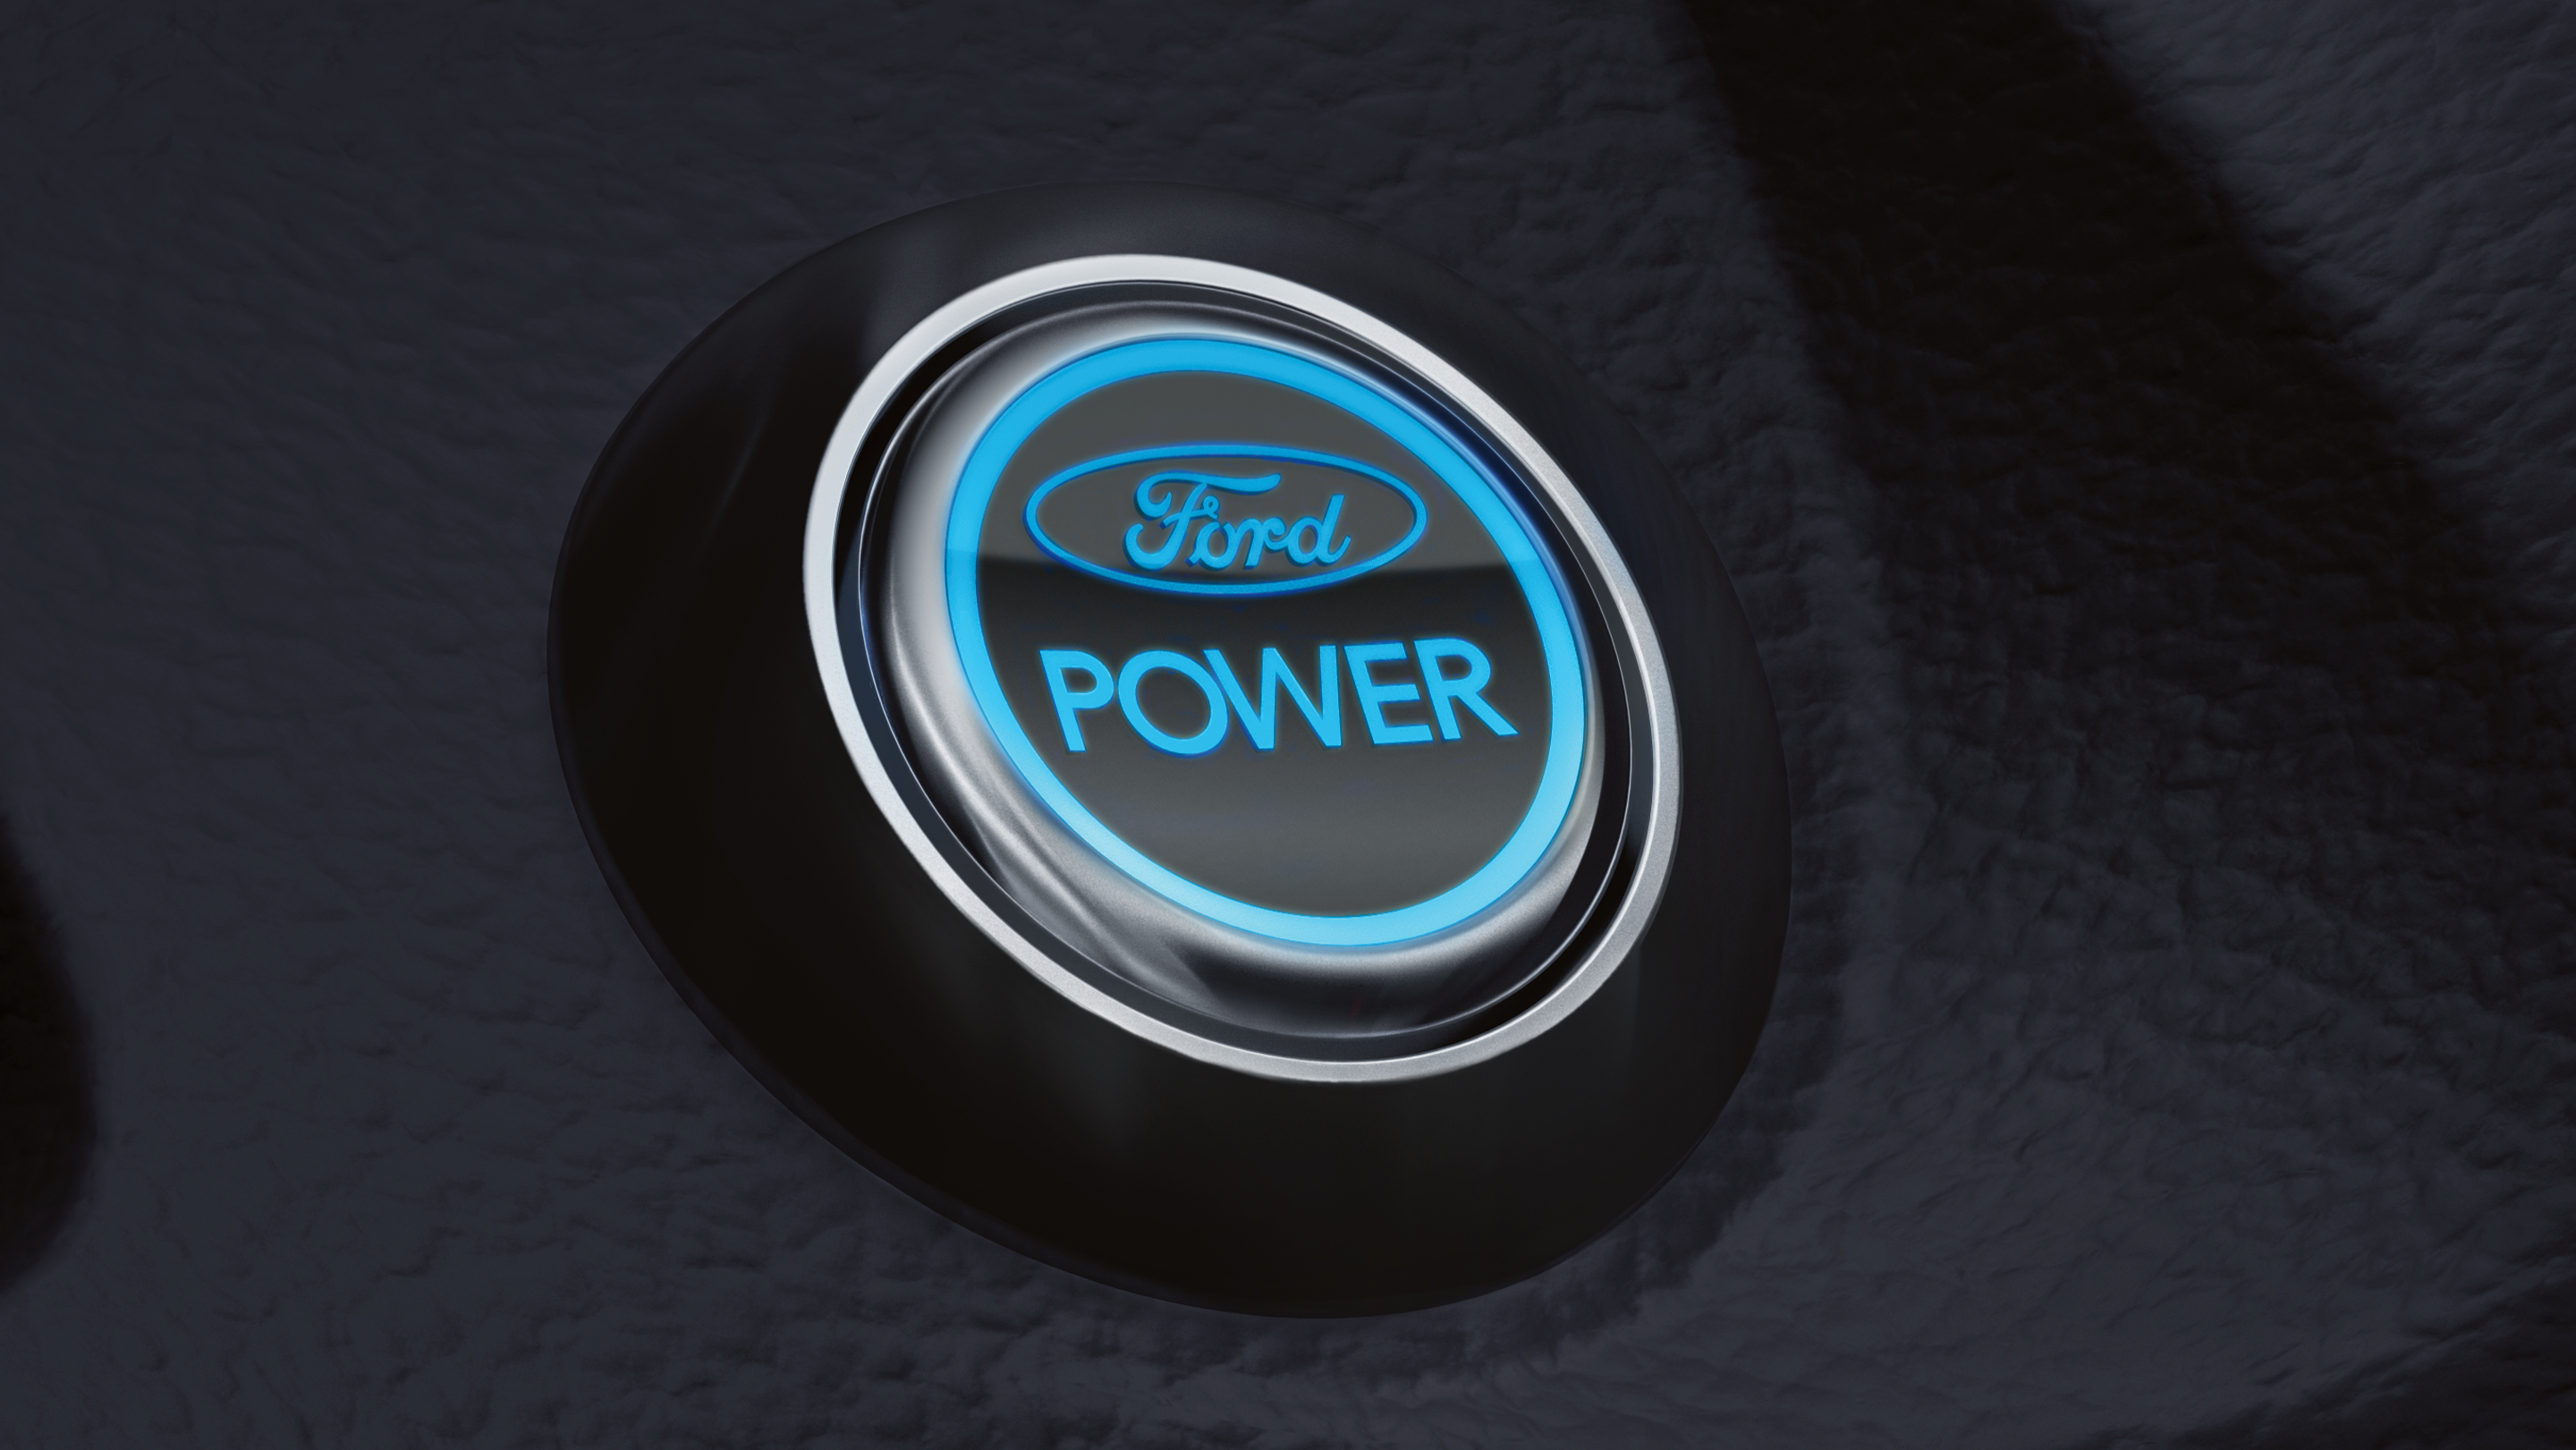 ford motor company situation analysis R case study ford motor company six sigma initiatives streamline operations ford motor company, one of the world's largest automotive manufacturers, has worked with penske on several six sigma.